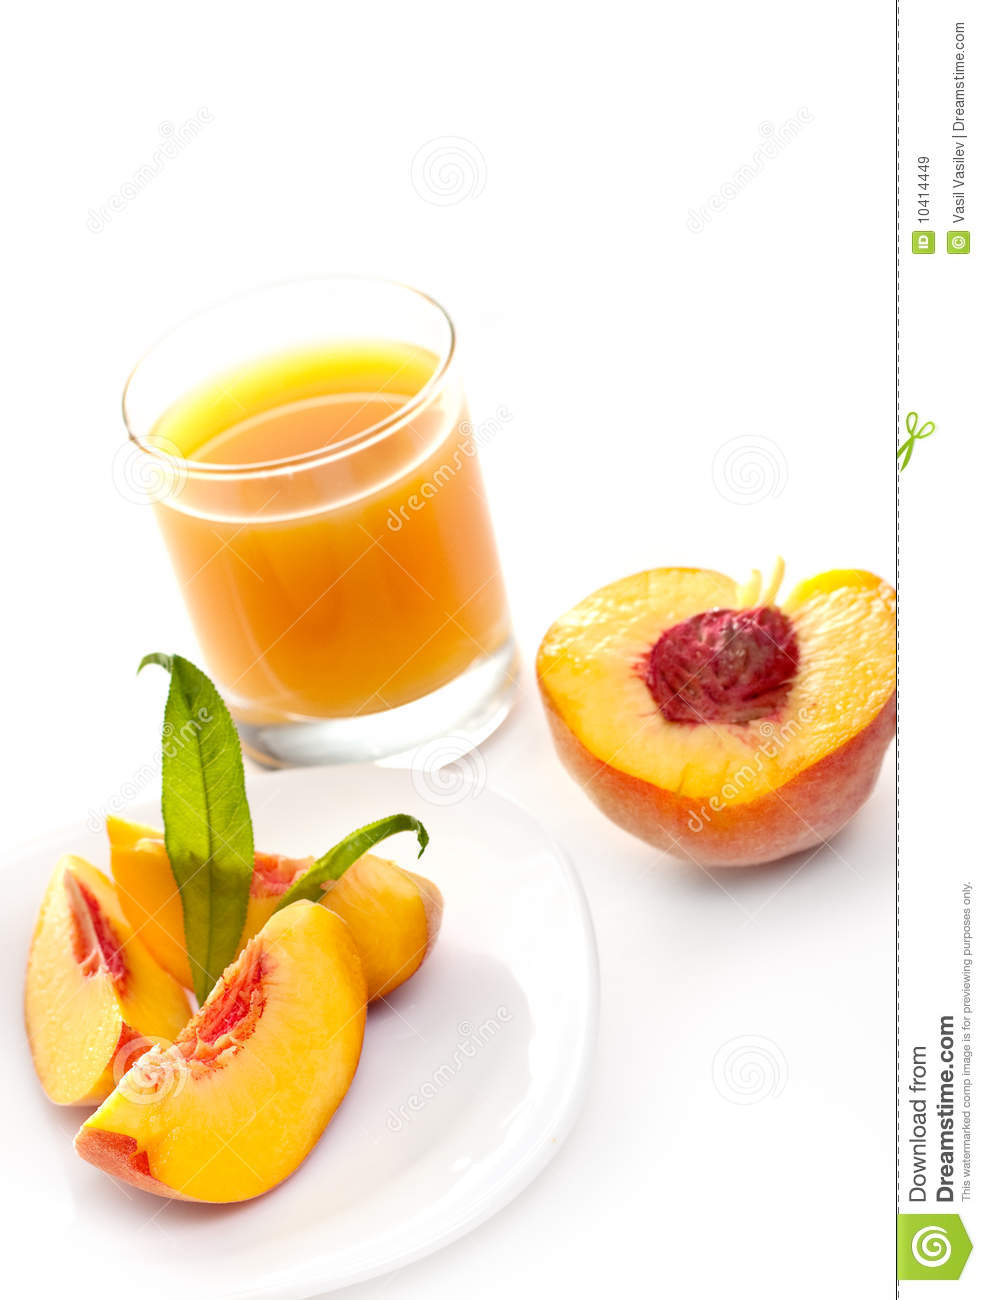 Peach juice and peaches, isolated on white background.